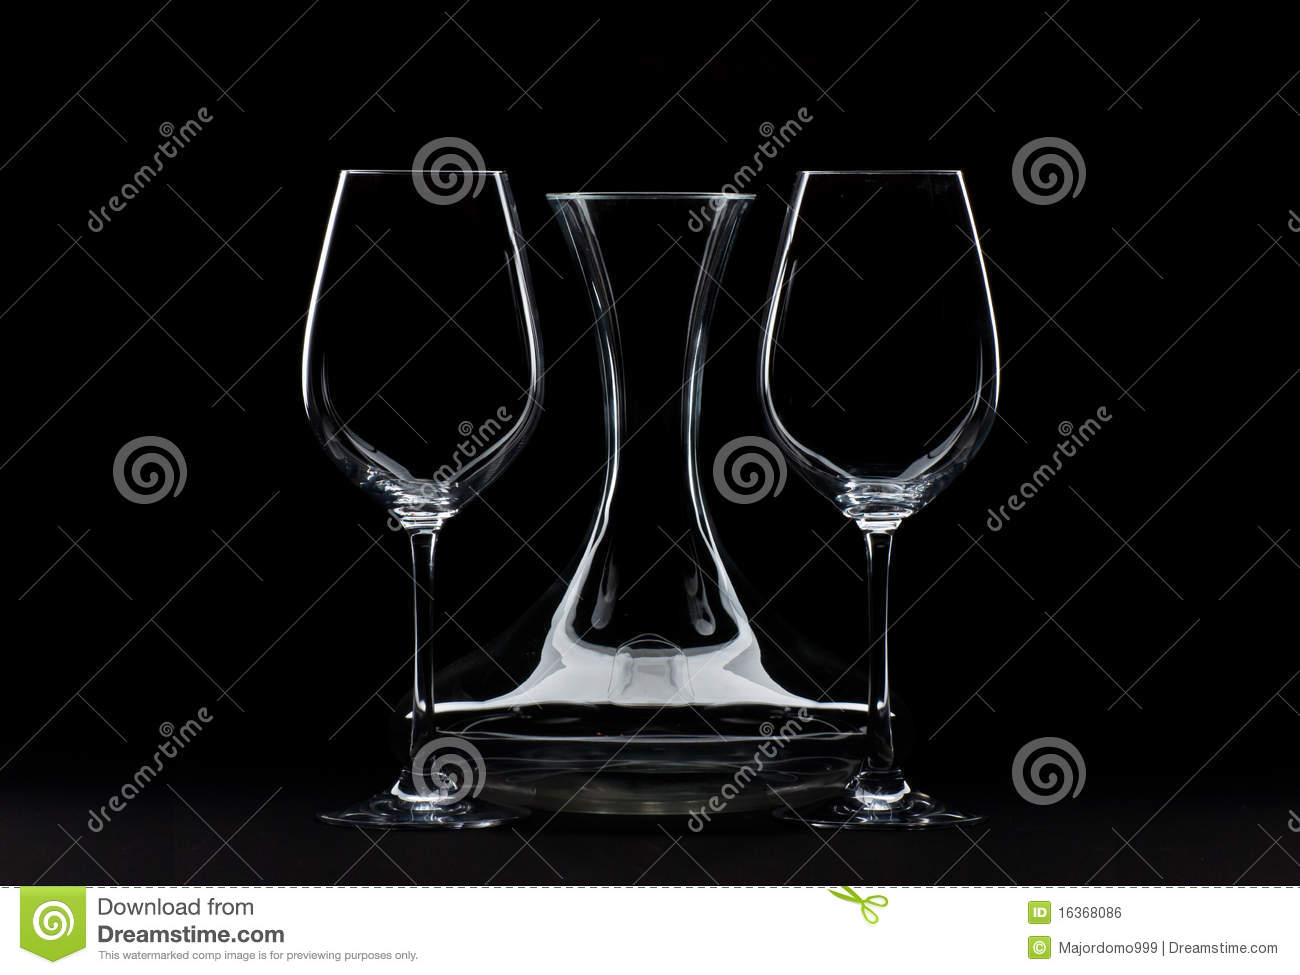 Big Wine Glasses and Decanter